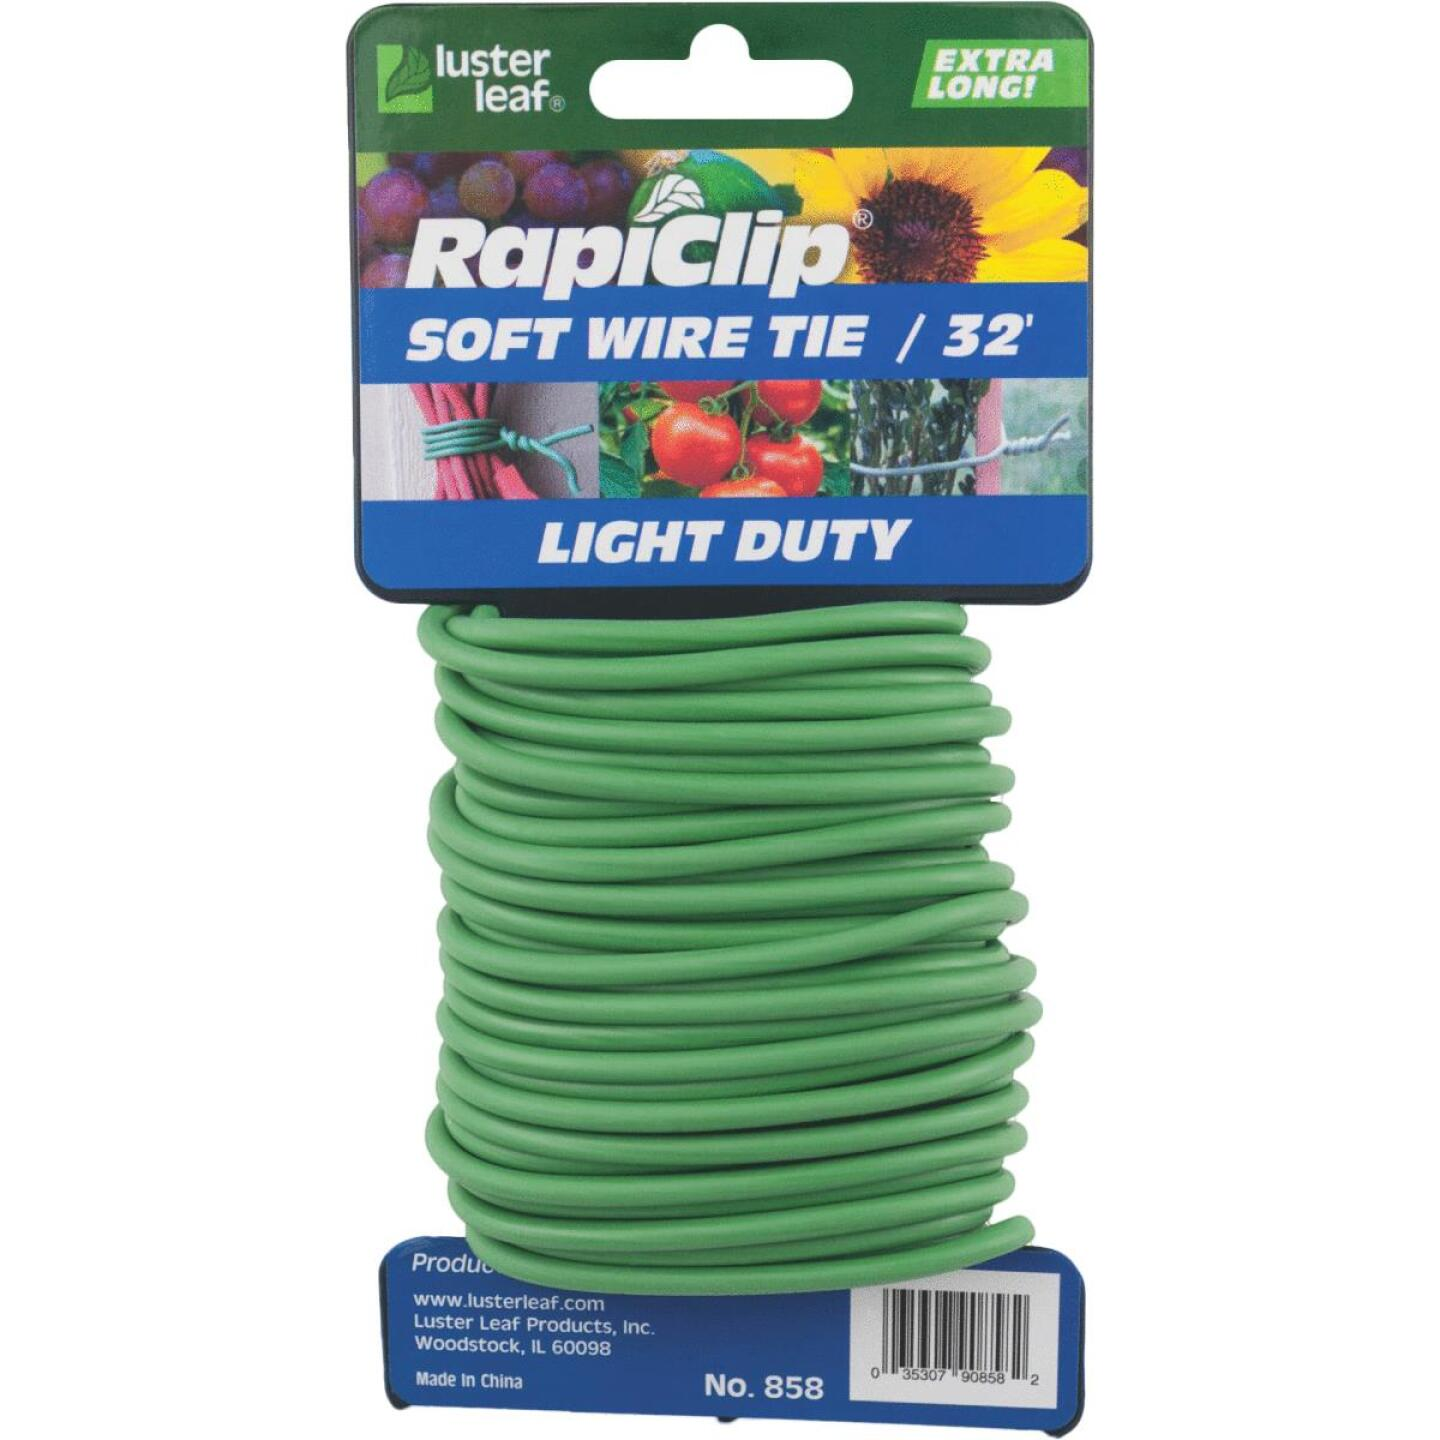 Rapiclip 32 Ft. Green Soft Wire Plant Tie Image 1